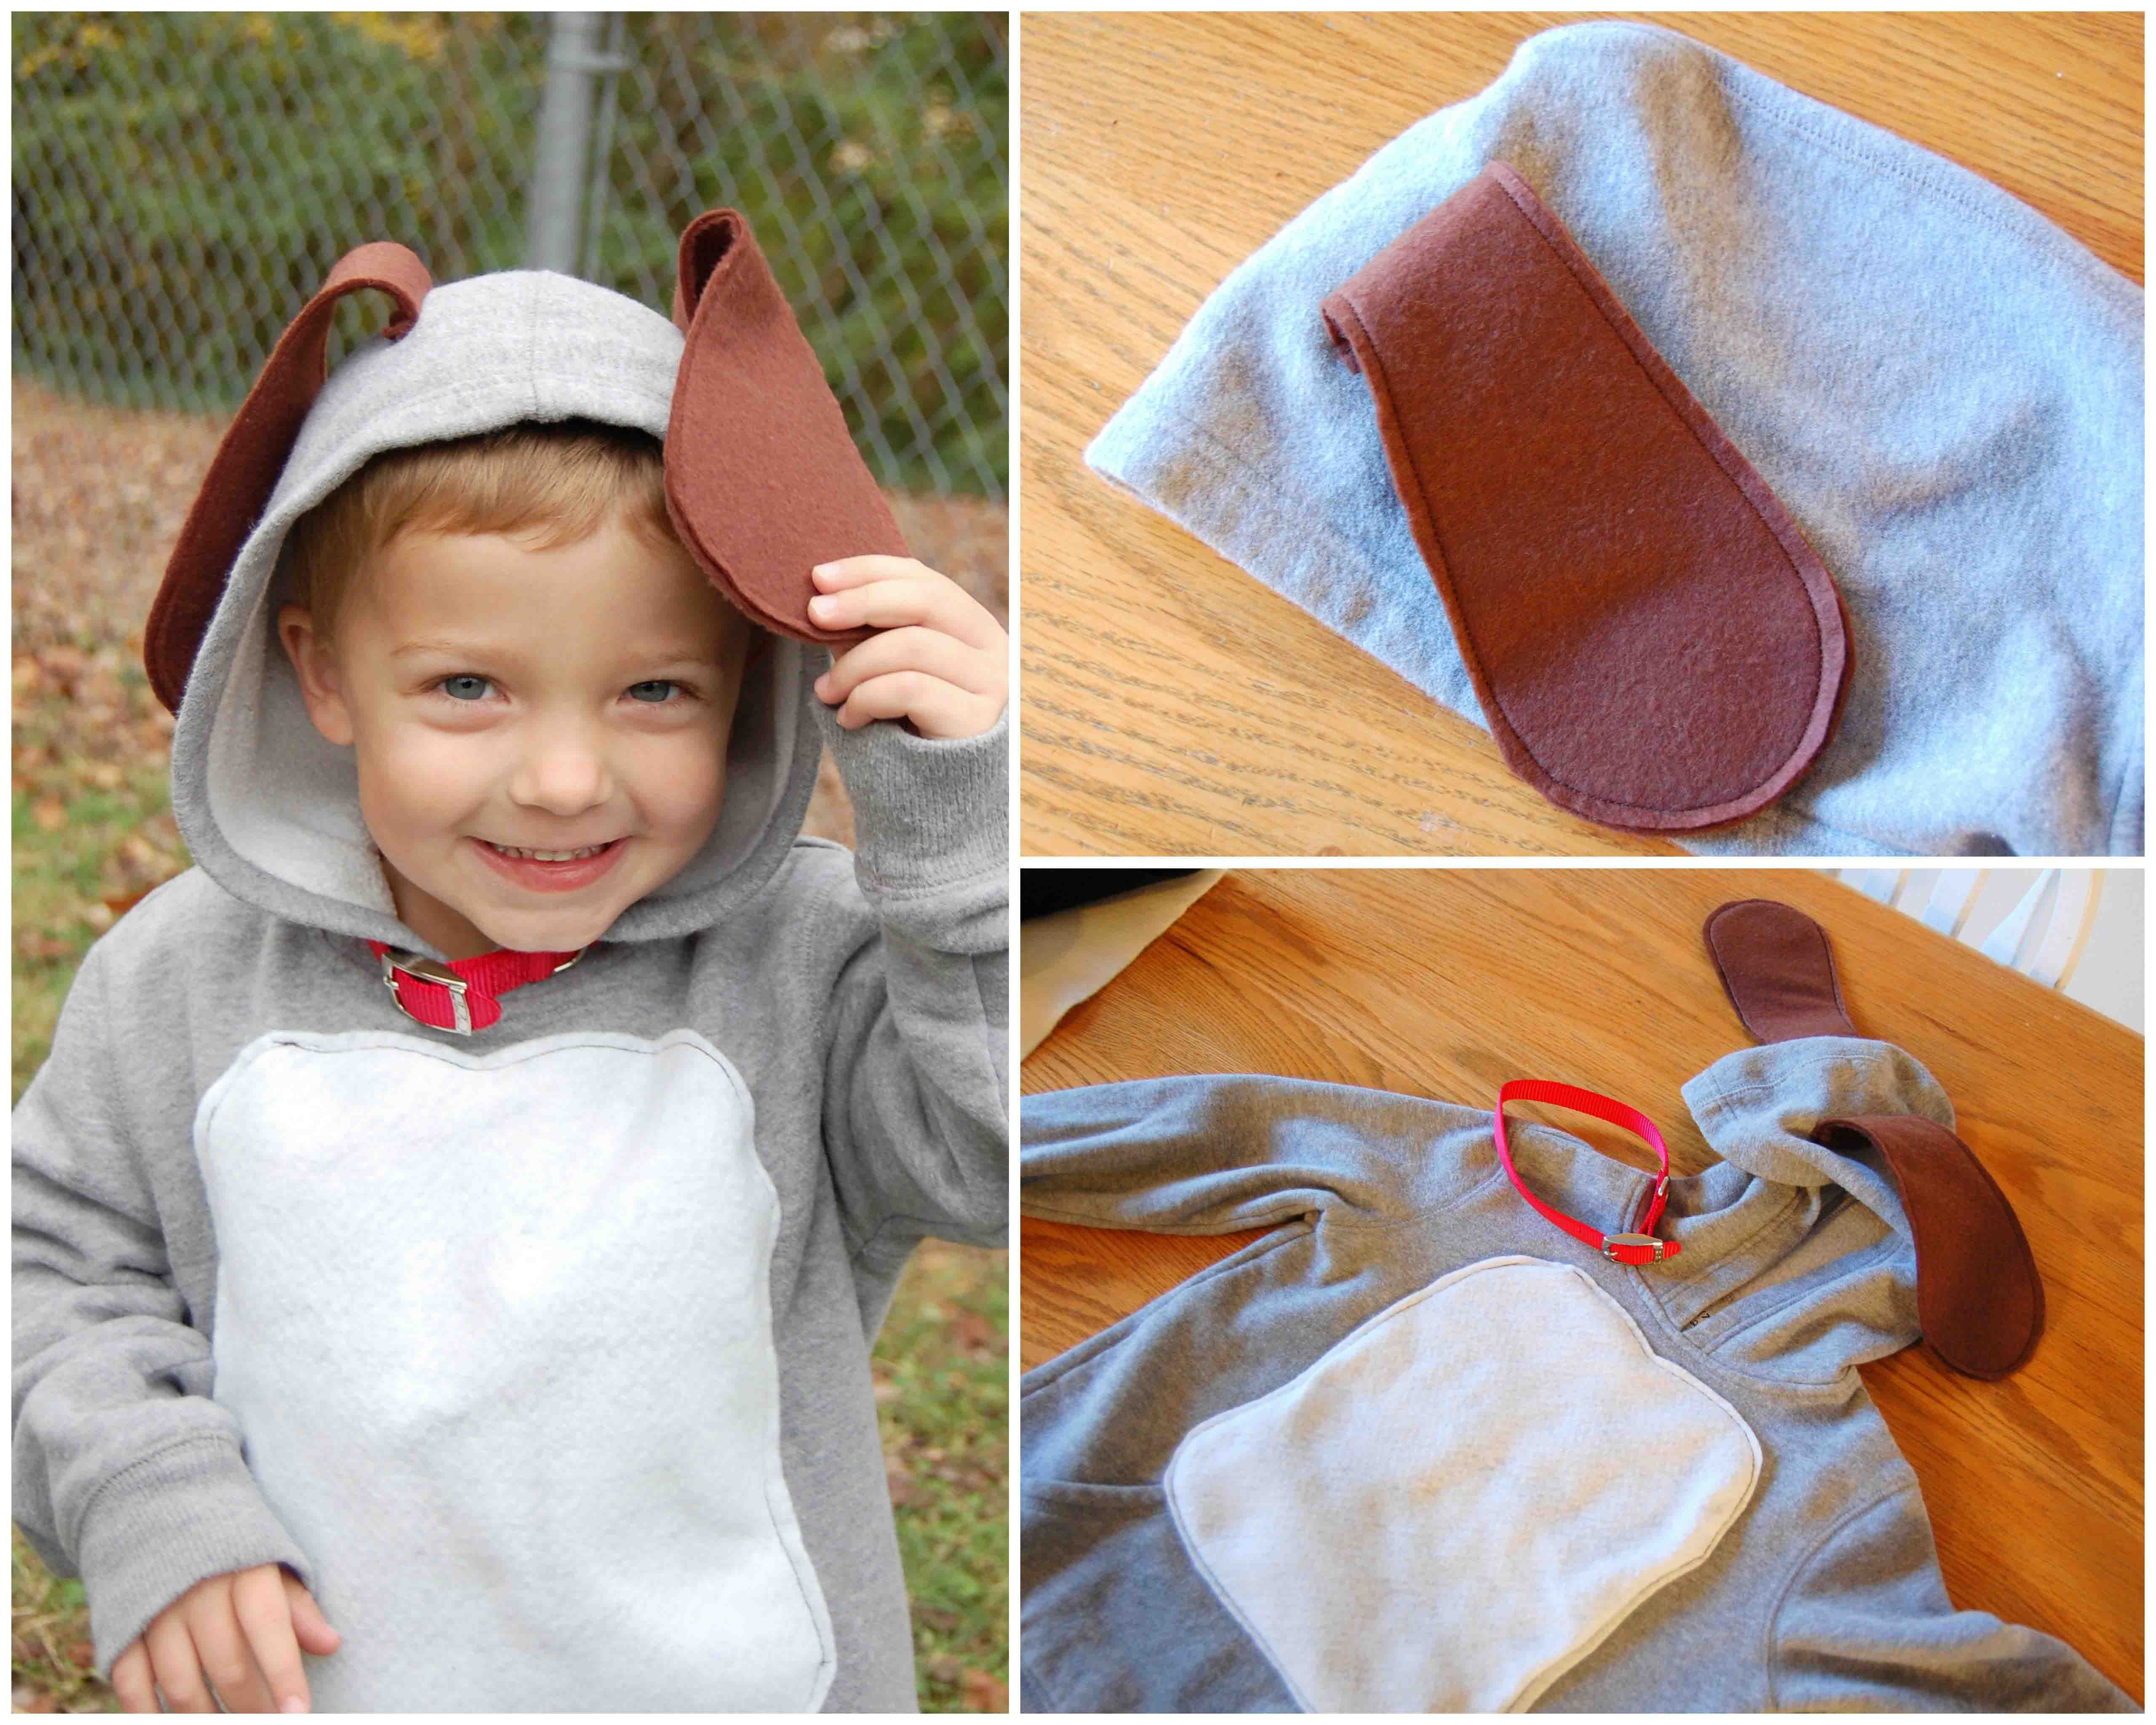 [Pinning my own because I had trouble finding a homemade puppy costume idea.]  sc 1 st  Pinterest & Pinning my own because I had trouble finding a homemade puppy ...